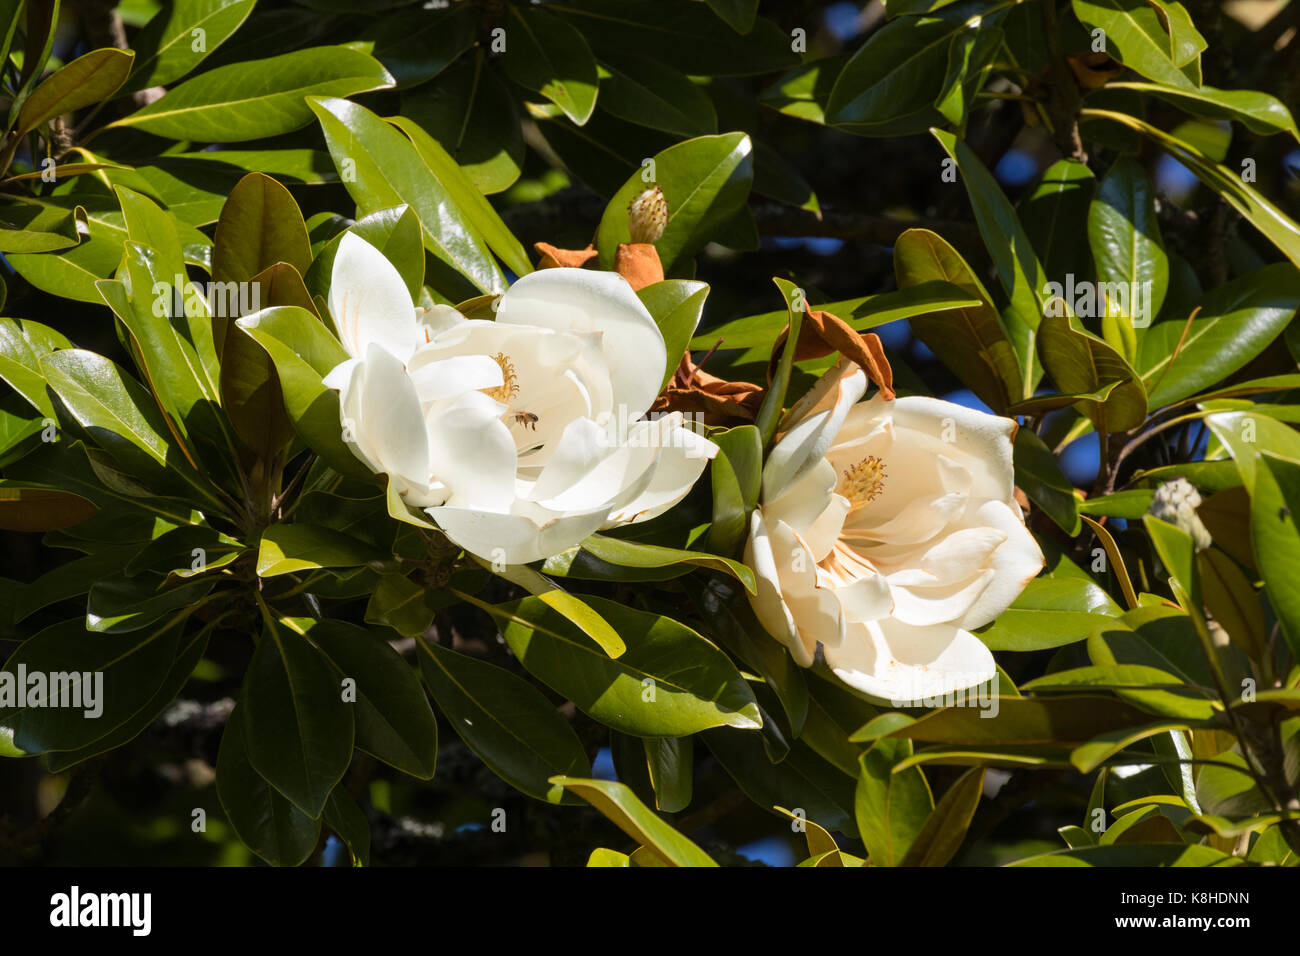 Creamy White Fragrant Summer Flowers Of The Bull Bay Tree Magnolia